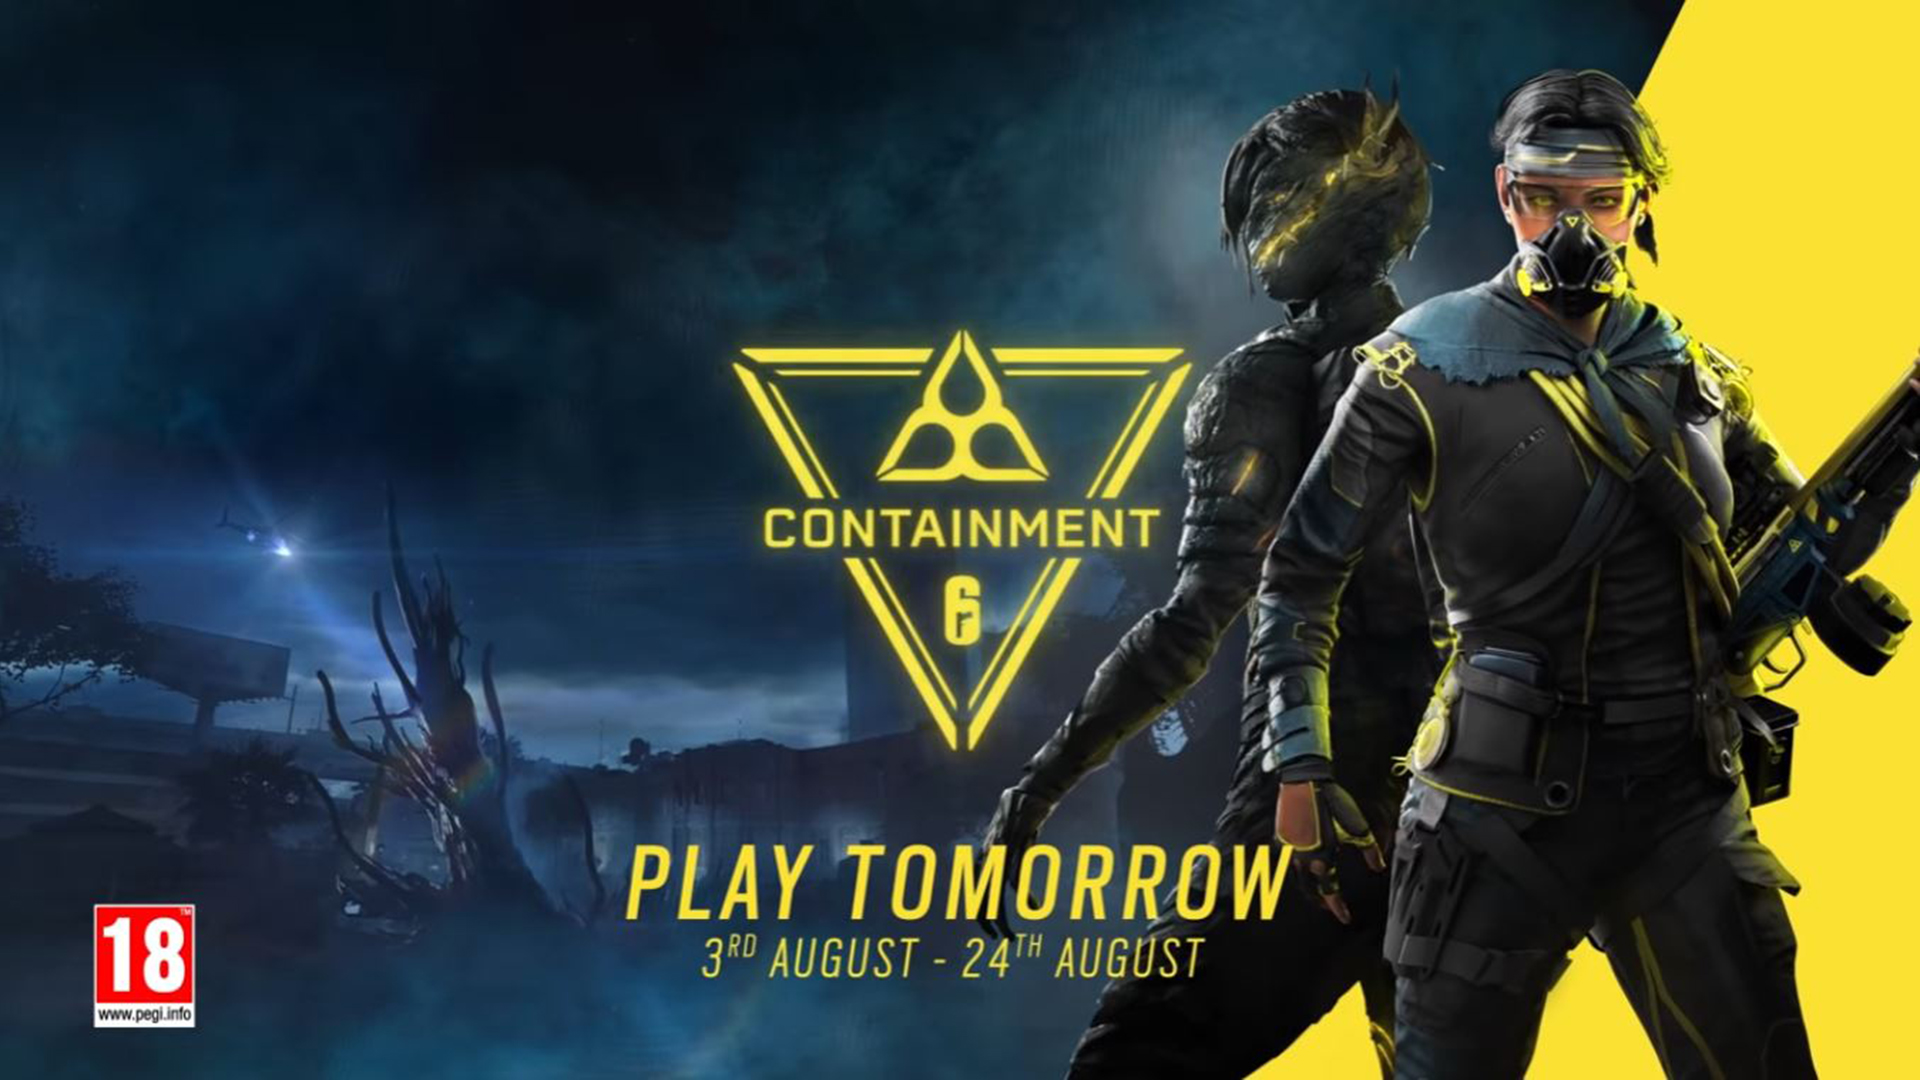 rainbow-six-siege-is-getting-a-containment-event-with-a-new-game-mode